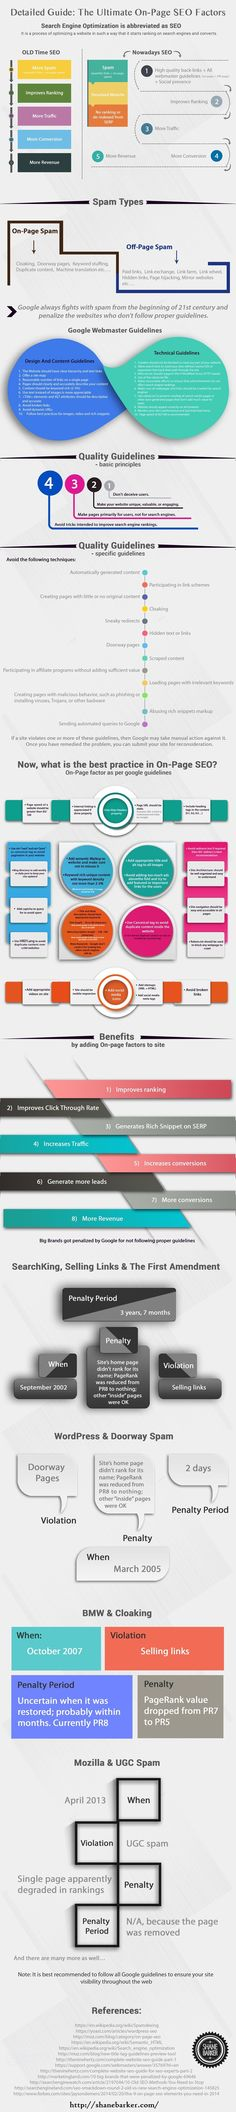 What Are Key On-Page Factors For #SEO? #infographic